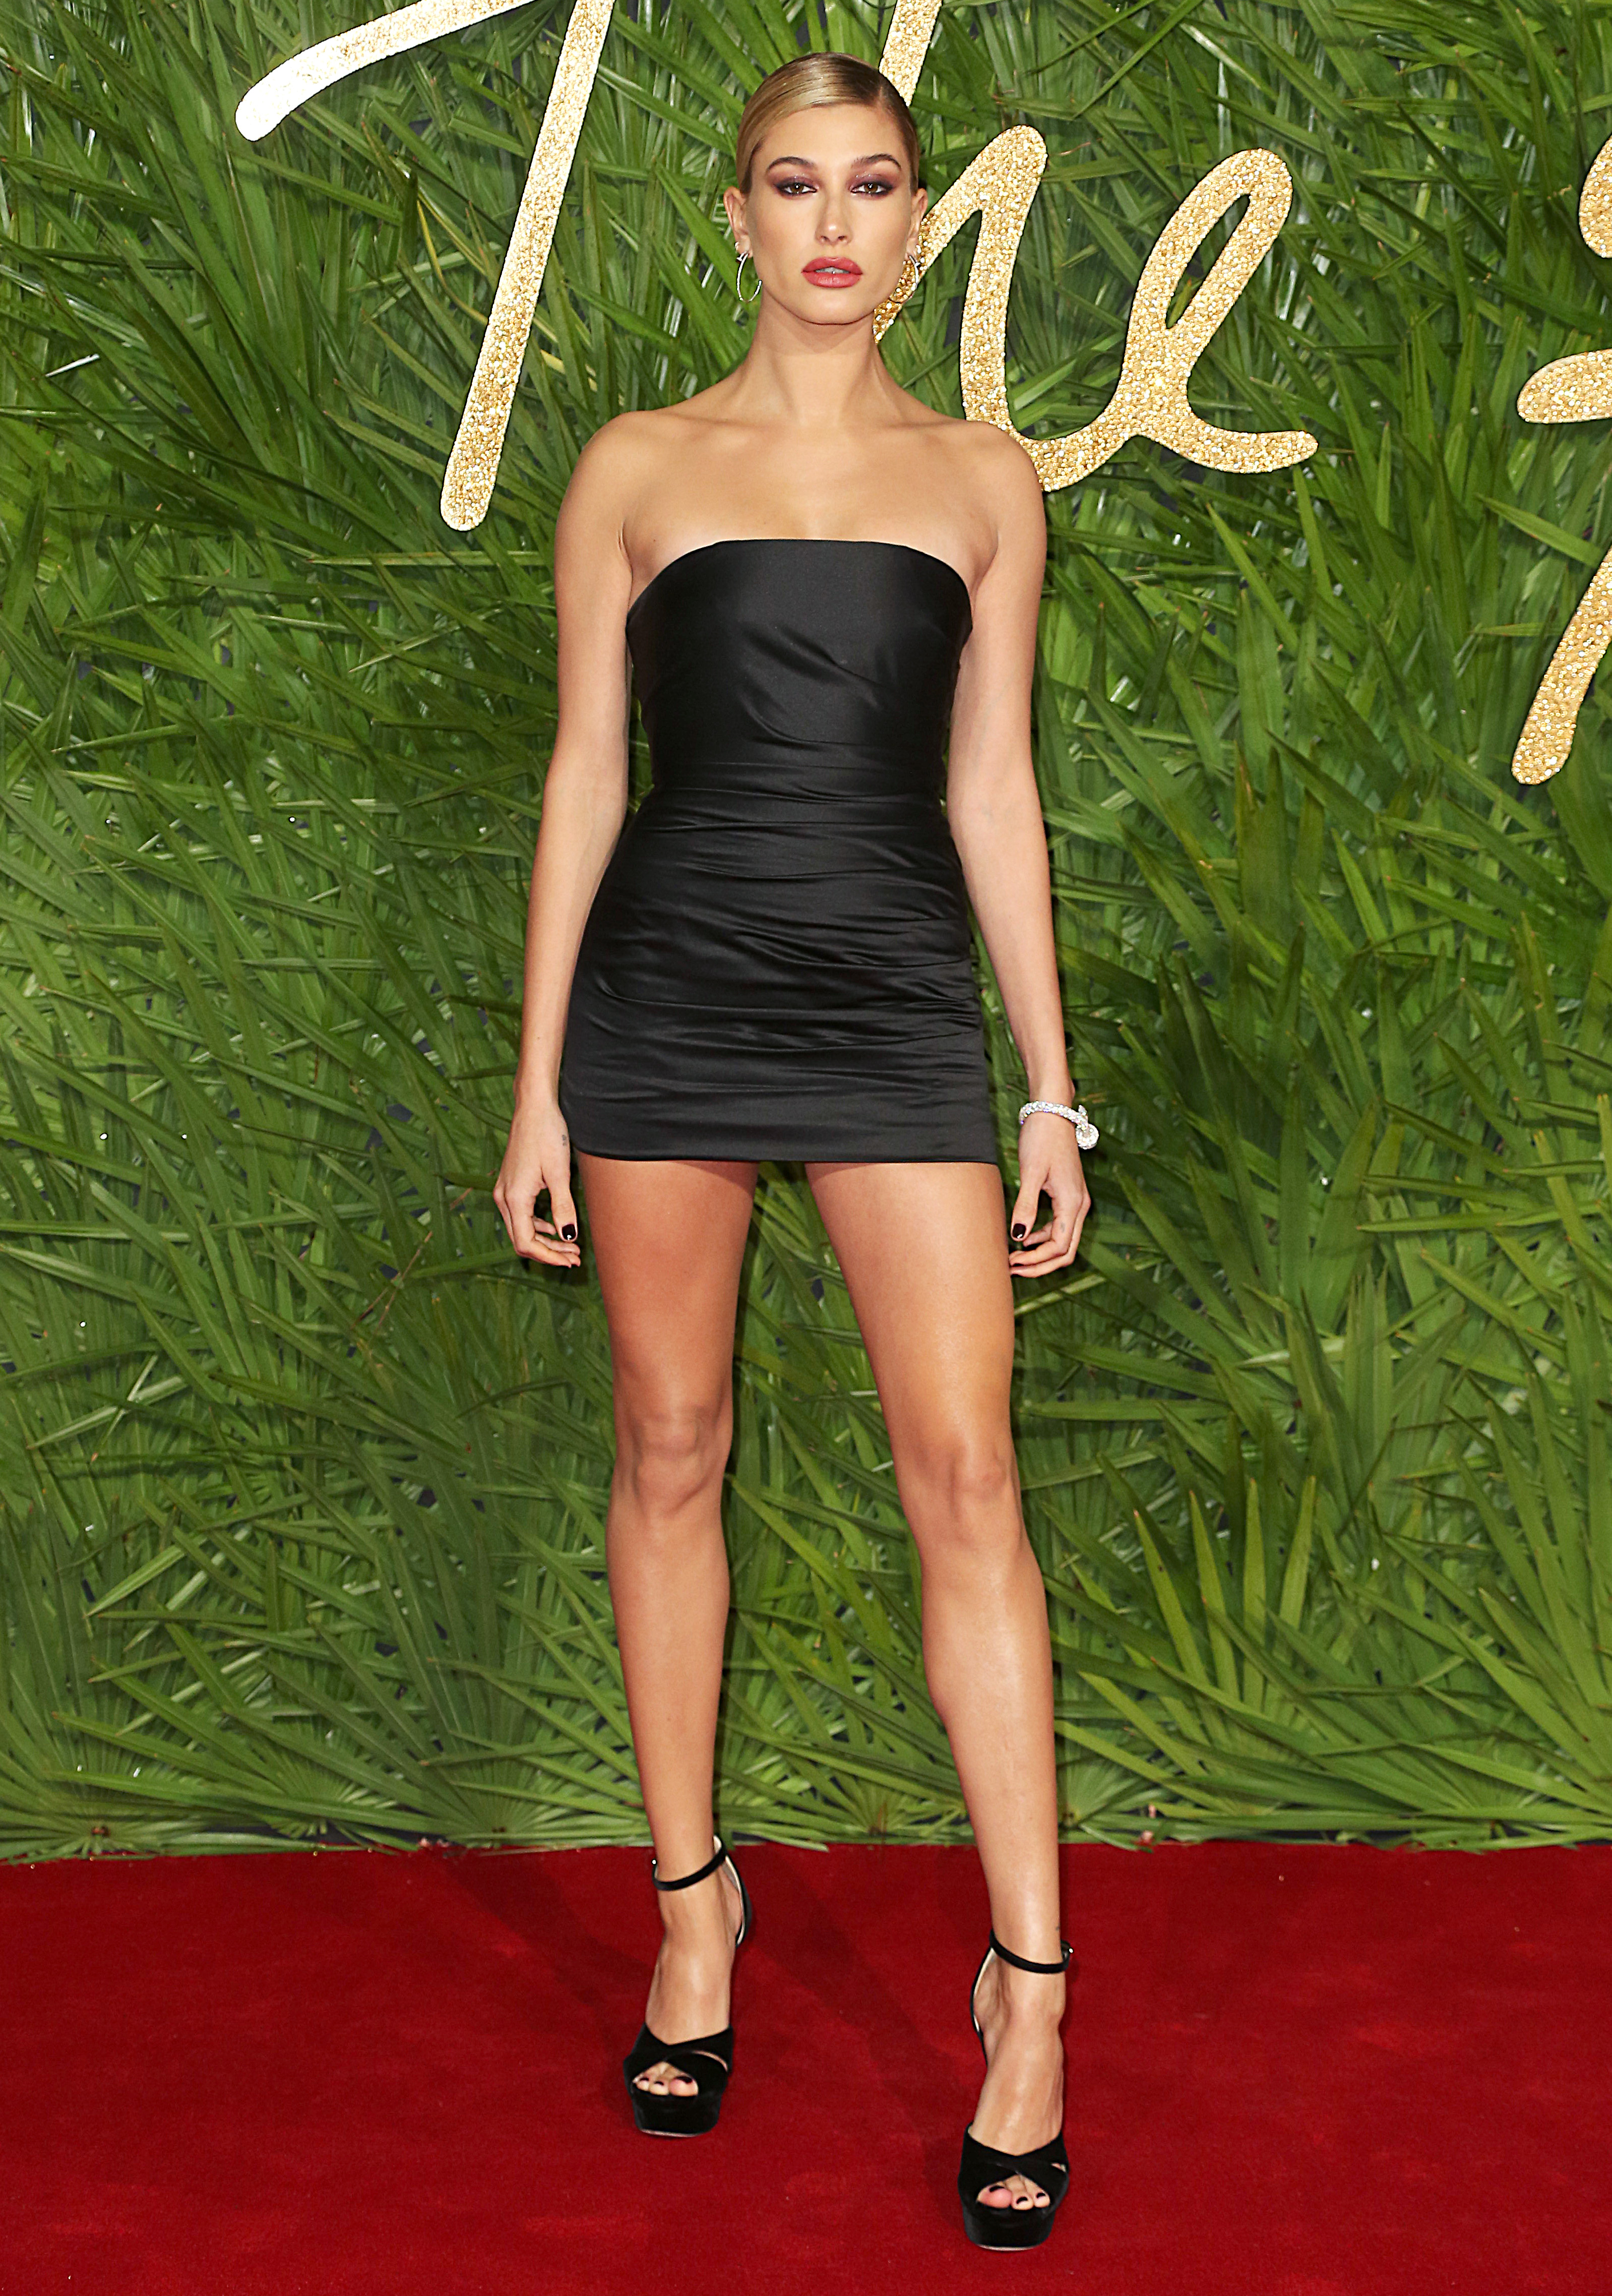 The Fashion Awards 2017, Royal Albert Hall, London UK, 04 December 2017, Photo by Brett D. Cove <P> Pictured: Hailey Baldwin <B>Ref: SPL1632930  051217  </B><BR/> Picture by: Brett D. Cove / Splash News<BR/> </P><P> <B>Splash News and Pictures</B><BR/> Los Angeles:310-821-2666<BR/> New York:212-619-2666<BR/> London:870-934-2666<BR/> <span id=